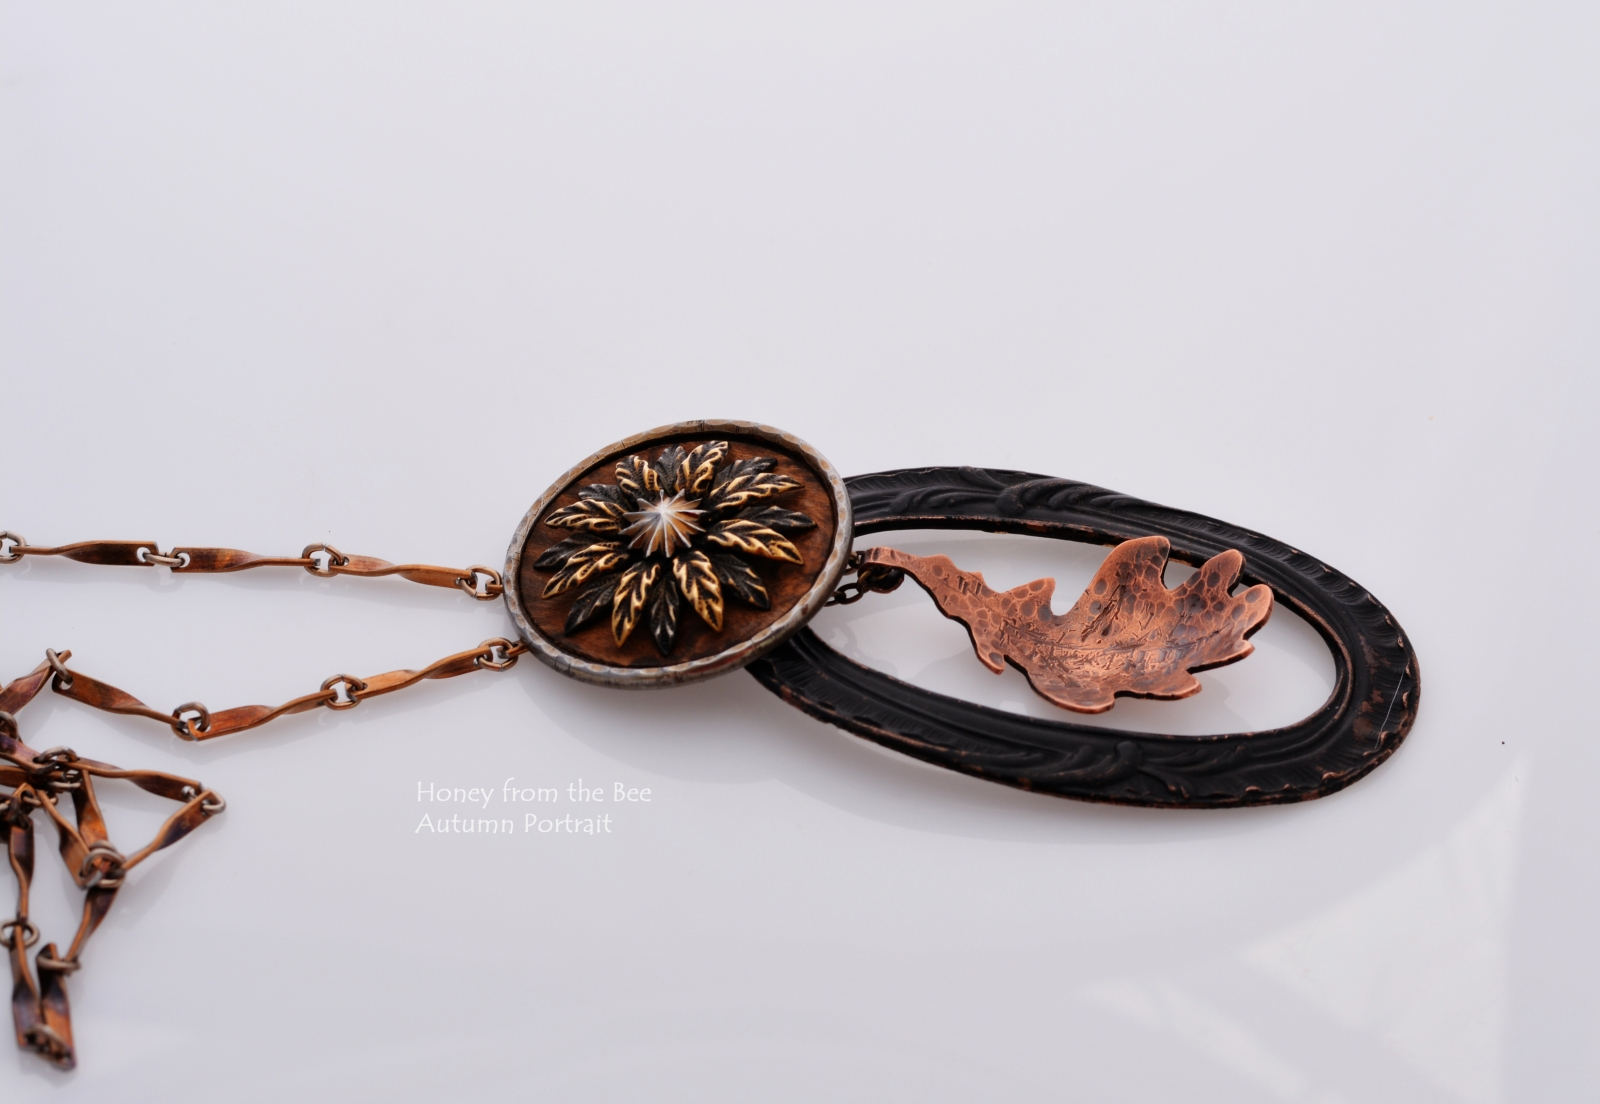 Antique Button and Buckle with Copper Leaf pendant